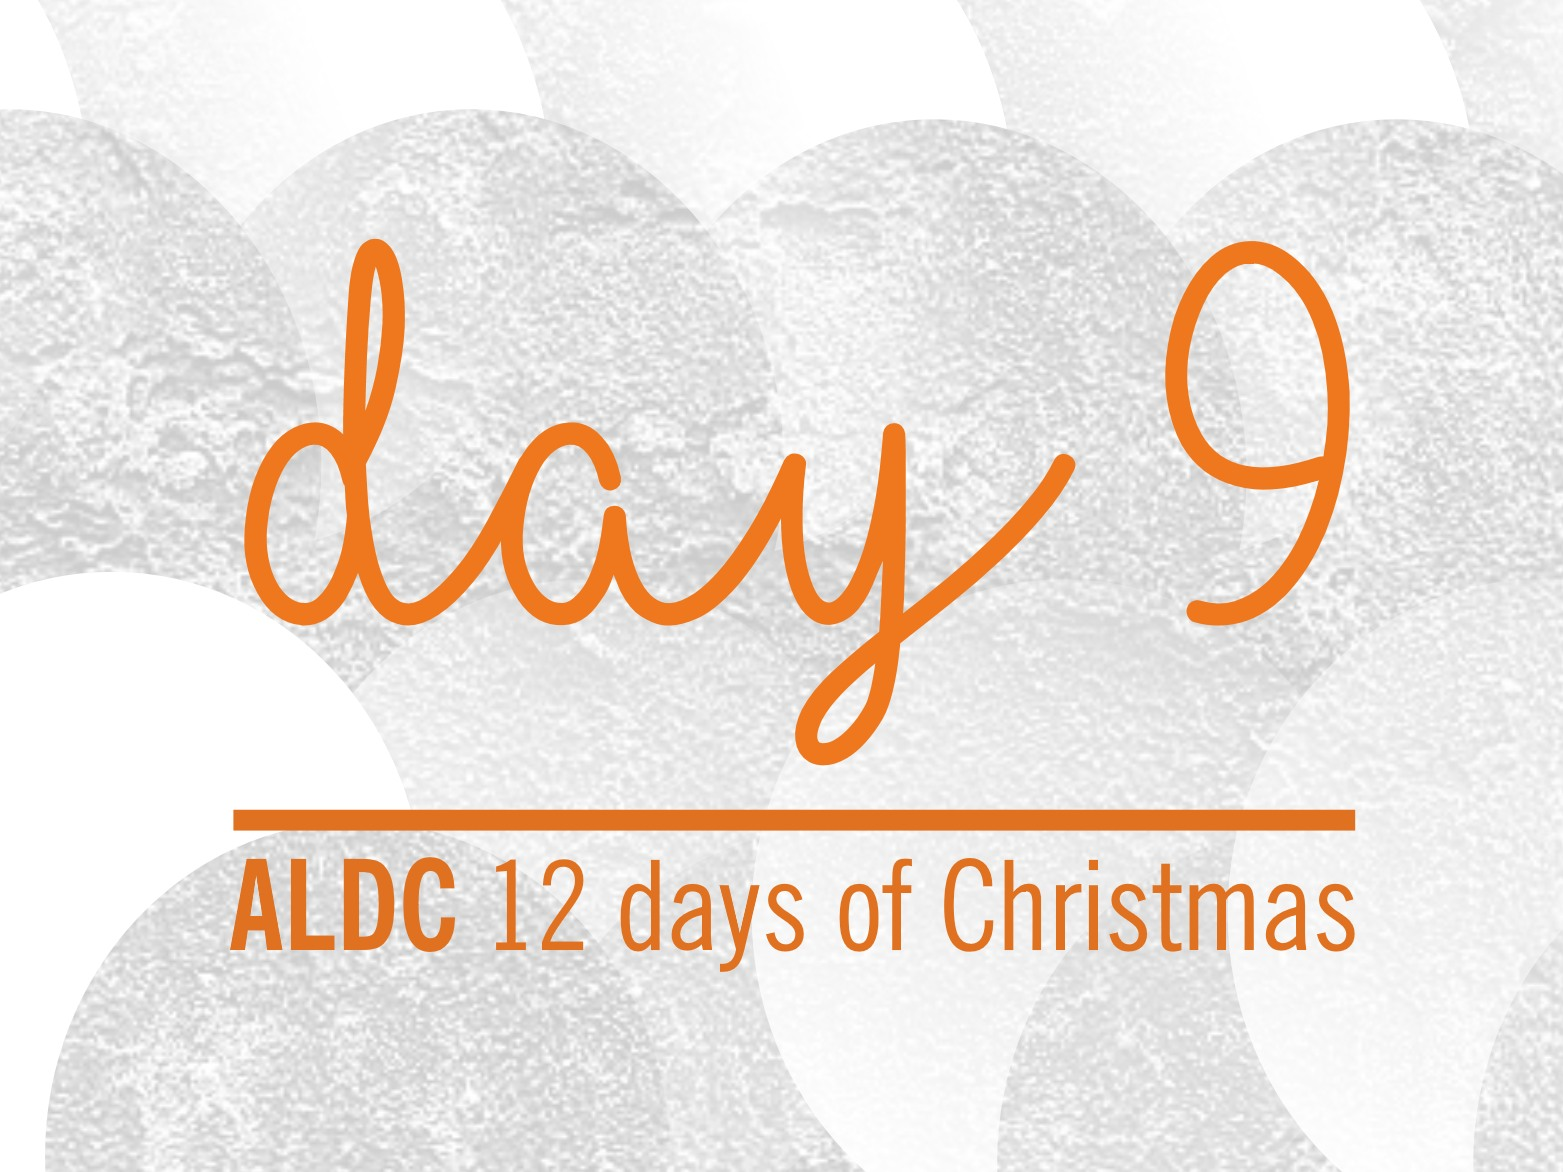 On the ninth day of Christmas, ALDC gave to me…